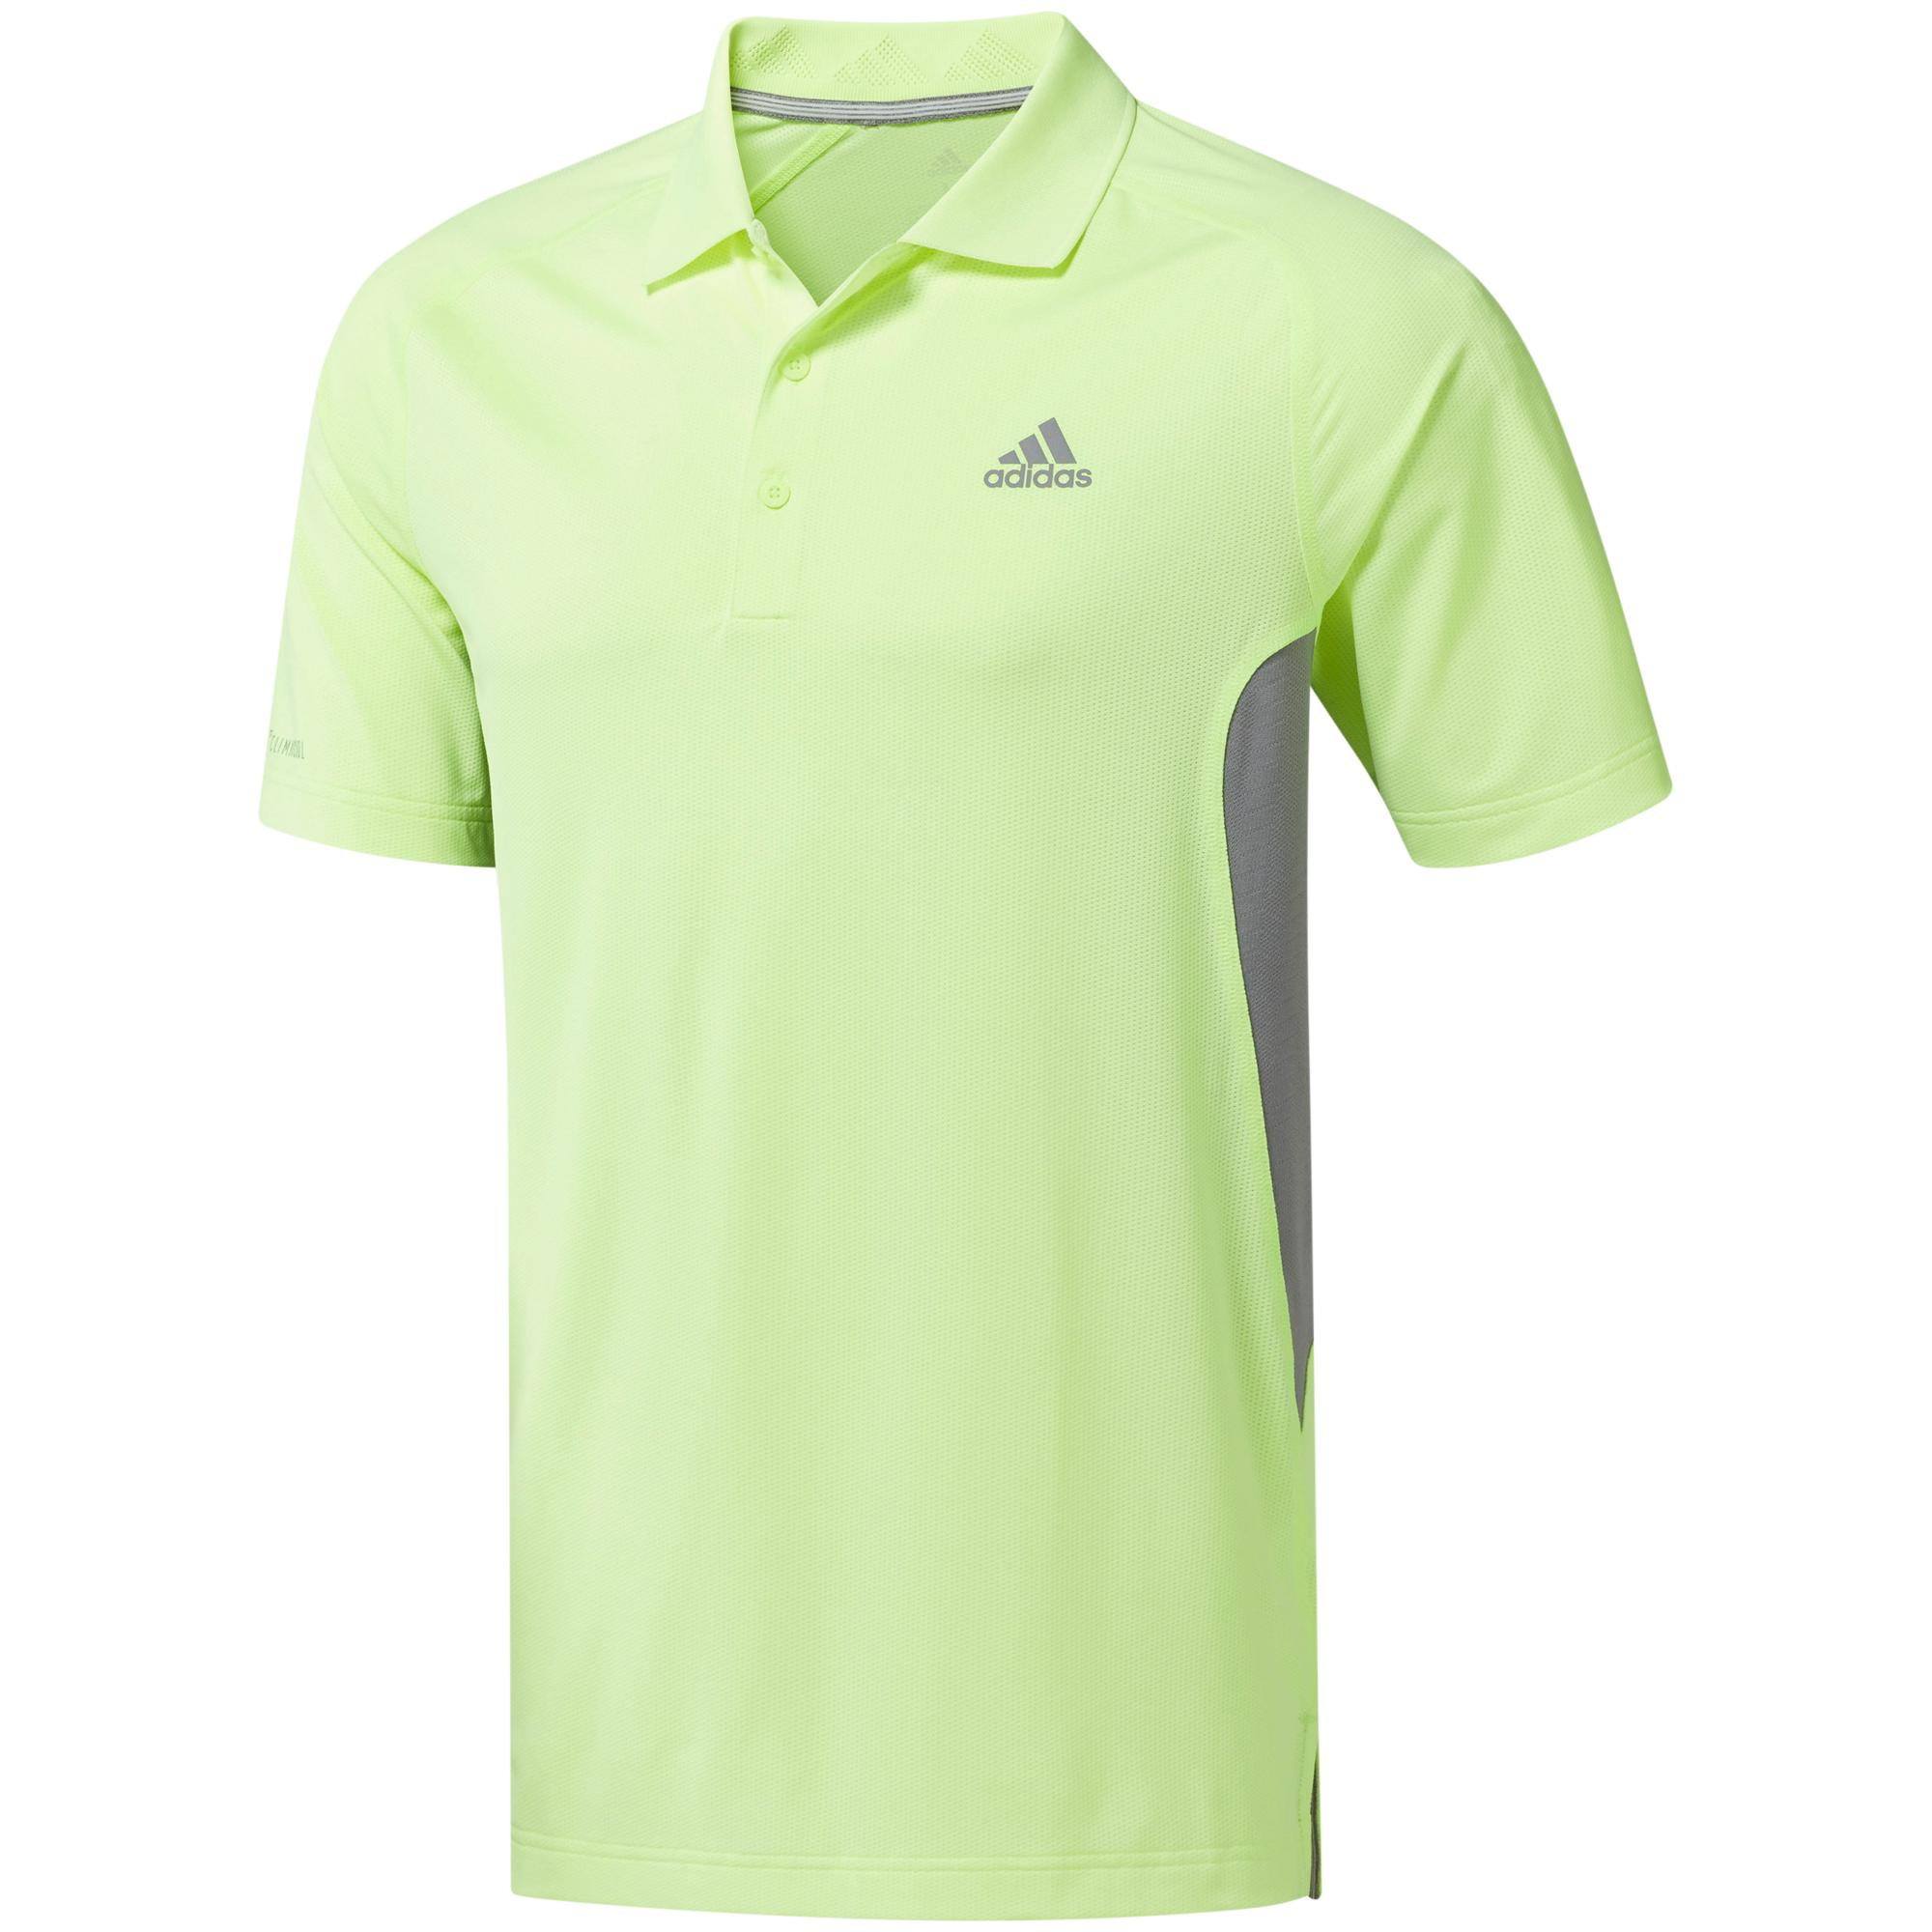 ca61e8e31 Men's Ultimate 365 Climacool Solid Short Sleeve Shirt   ADIDAS   Golf Town  Limited